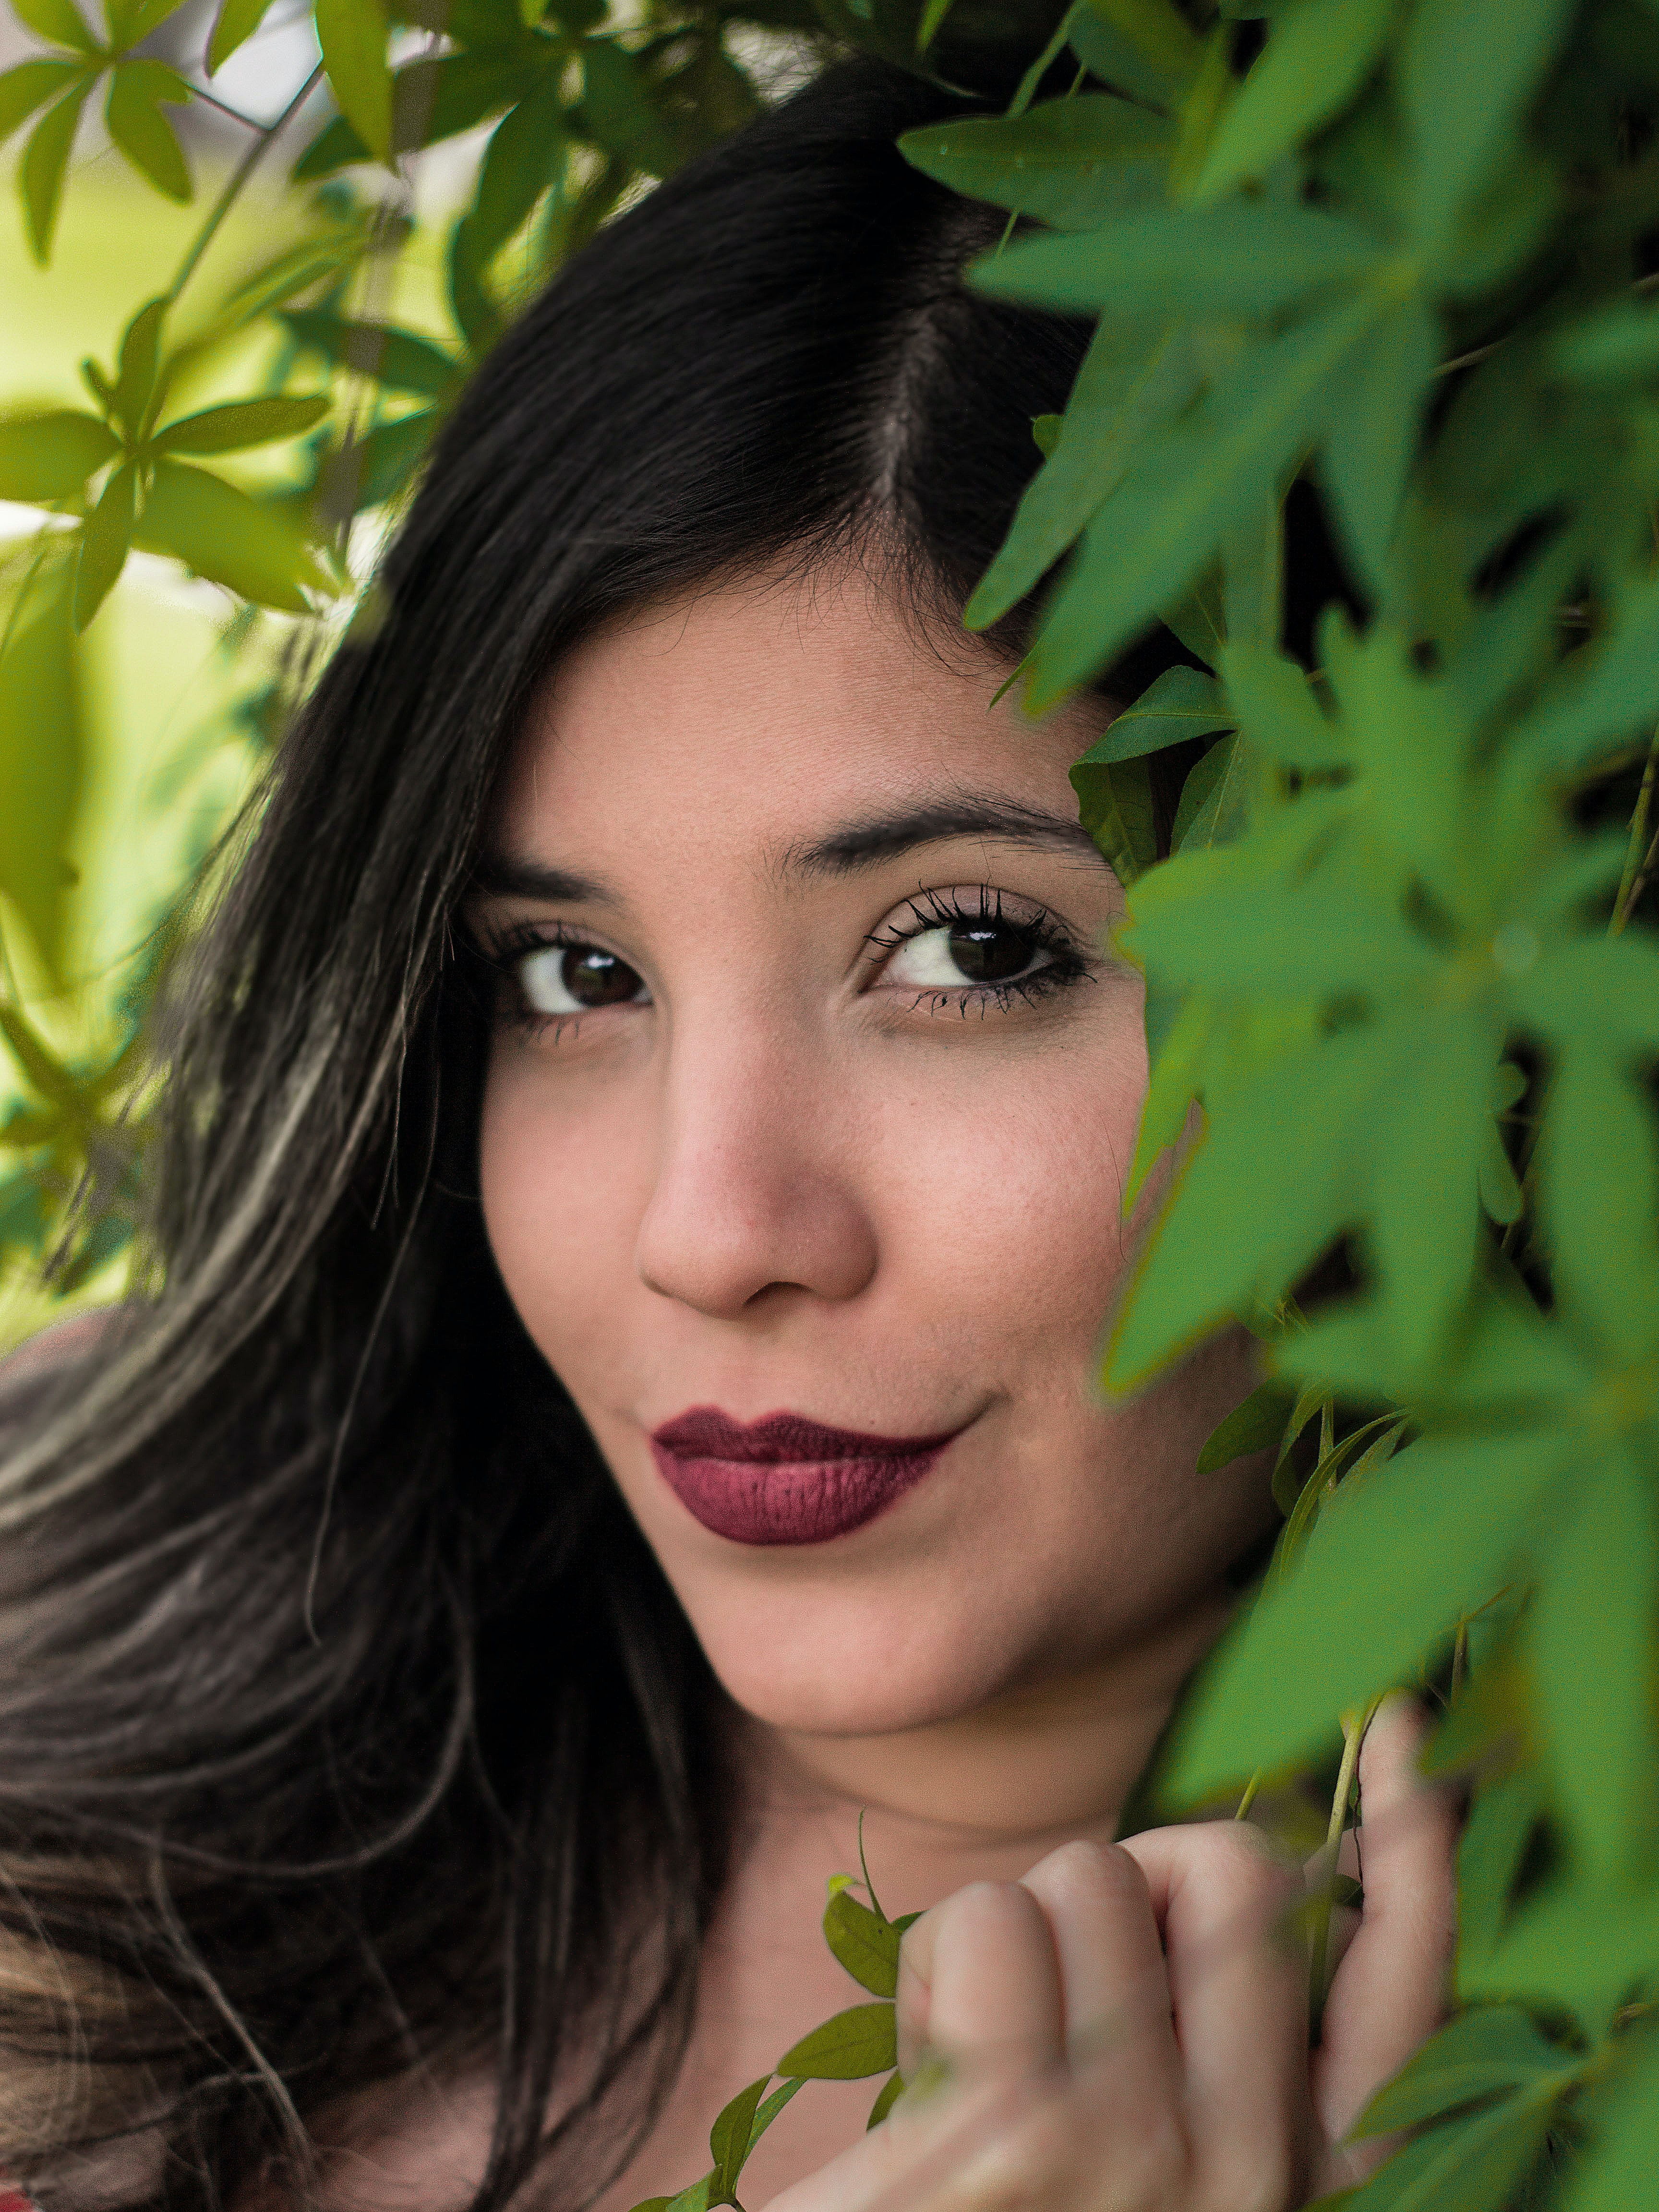 woman taking selfie next to green leaf plant